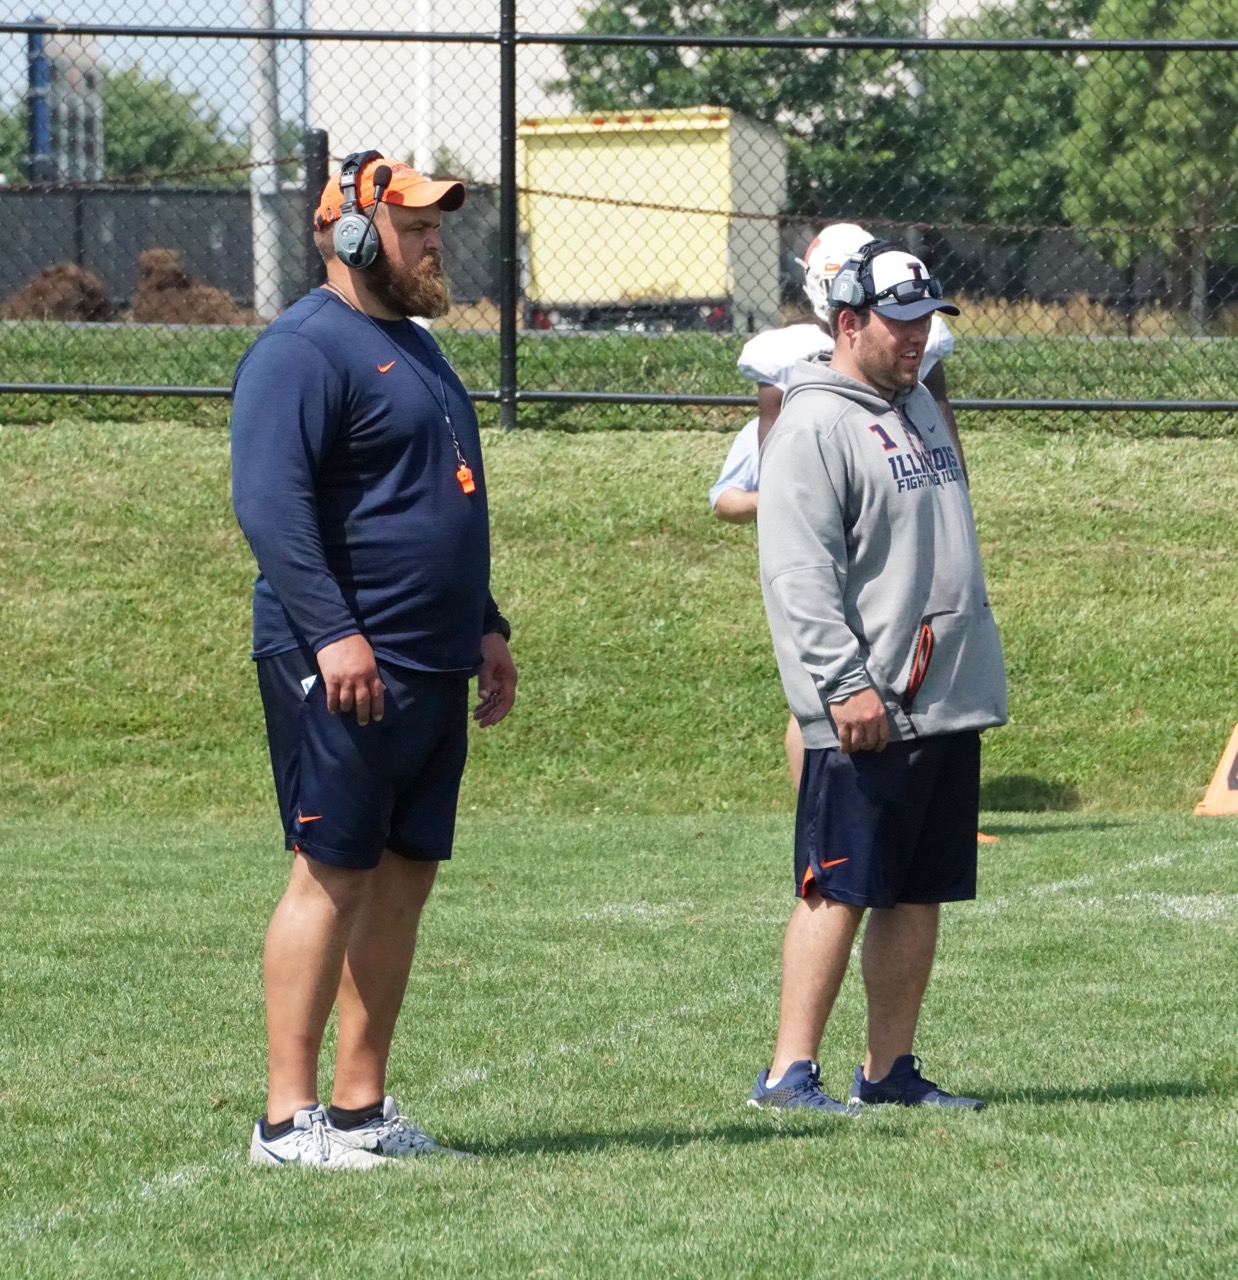 Offensive line coach Luke Butkus (left) and defensive line coach Austin Clark (right) watch their players at Illinois football training camp on Thursday. Clark is a new addition to the coaching staff and looks to bring a higher level of intensity to his players.